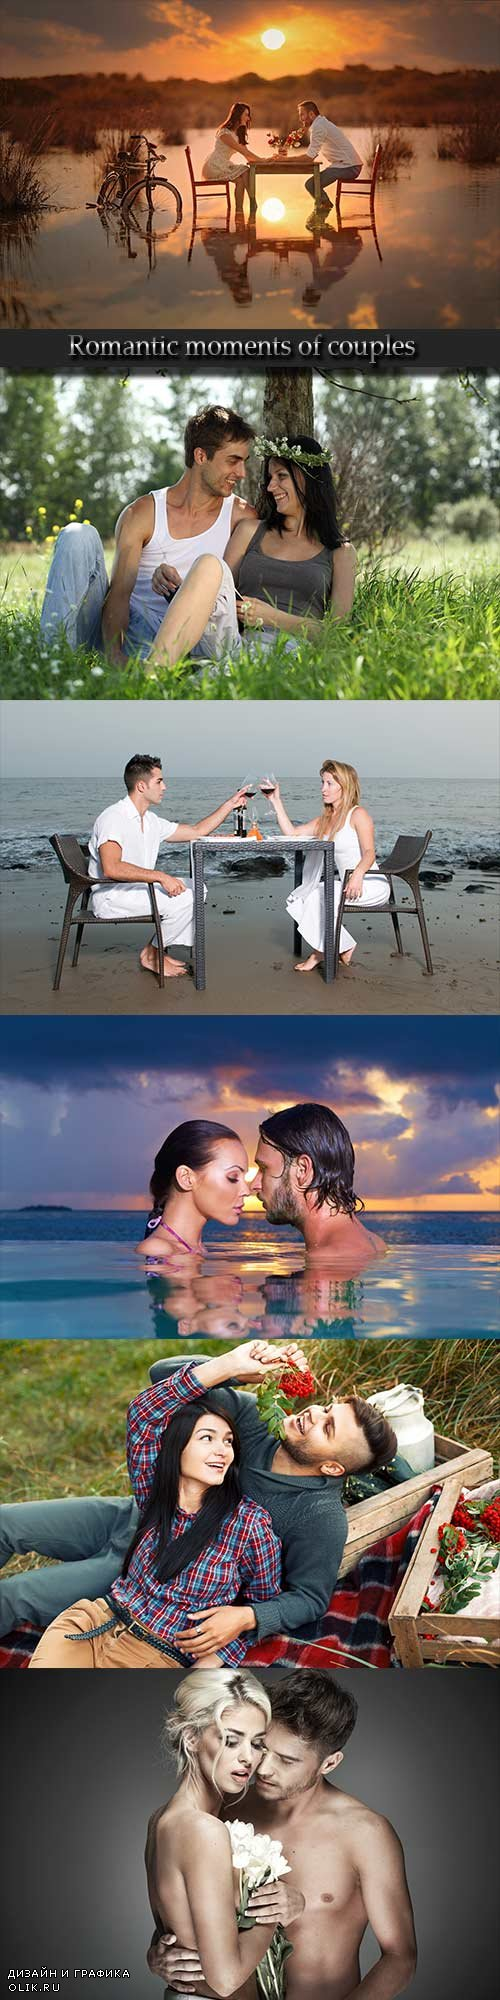 Romantic moments of couples